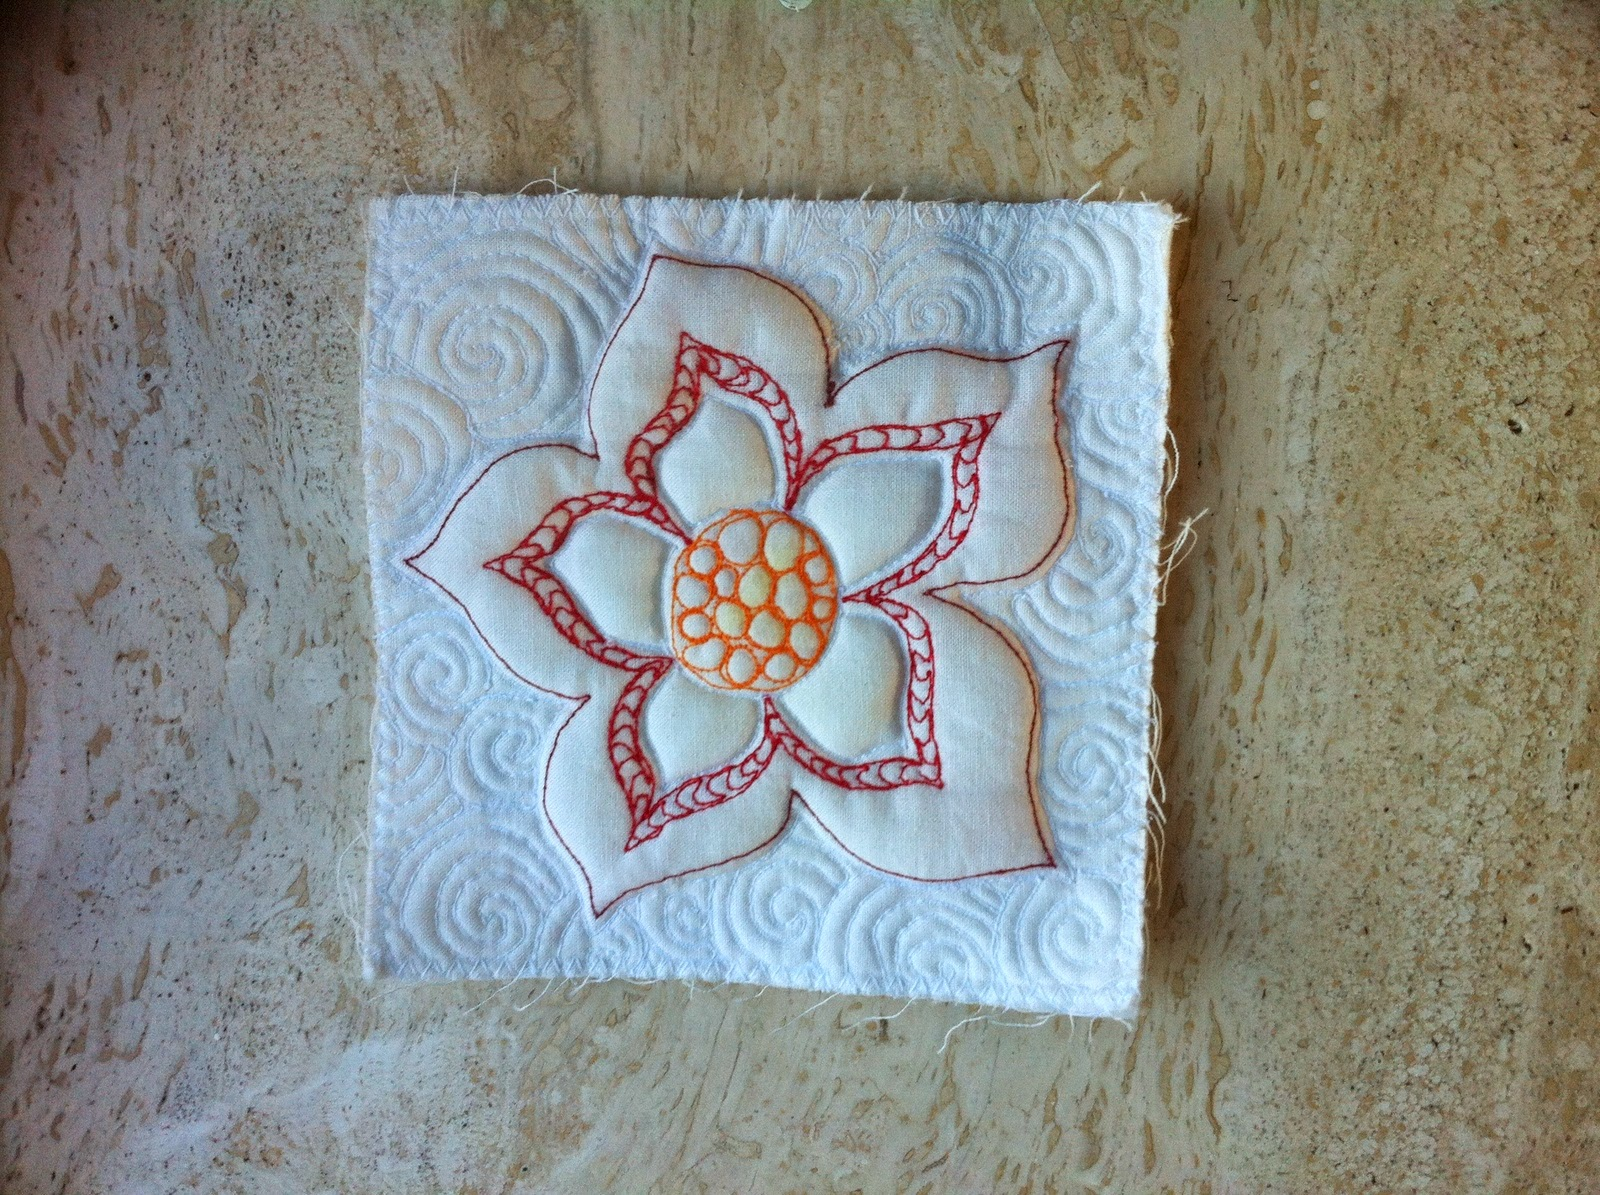 Proeflapje voor wholecloth quilt